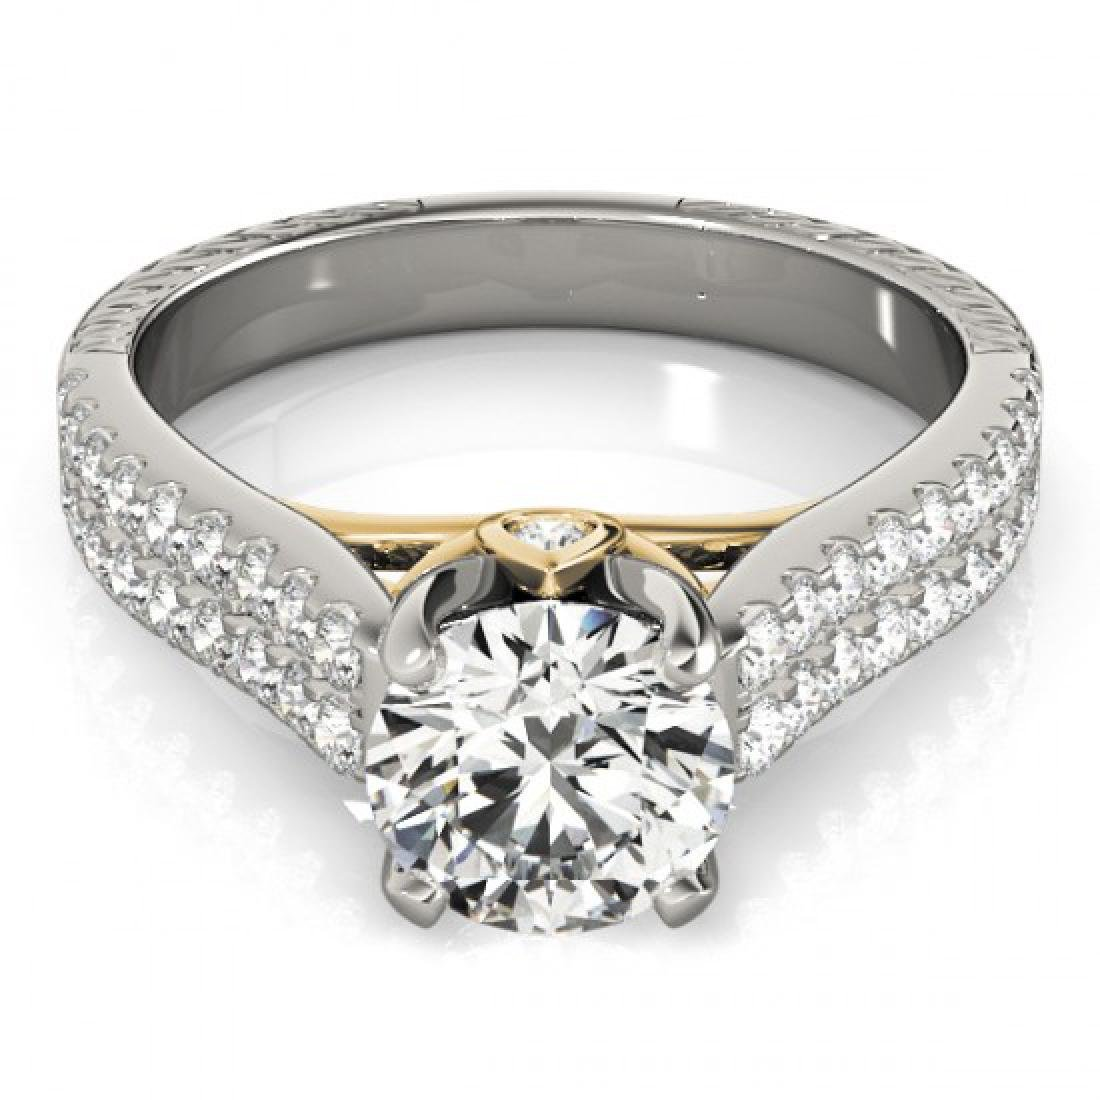 1.36 CTW Certified VS/SI Diamond Pave Ring 14K White &